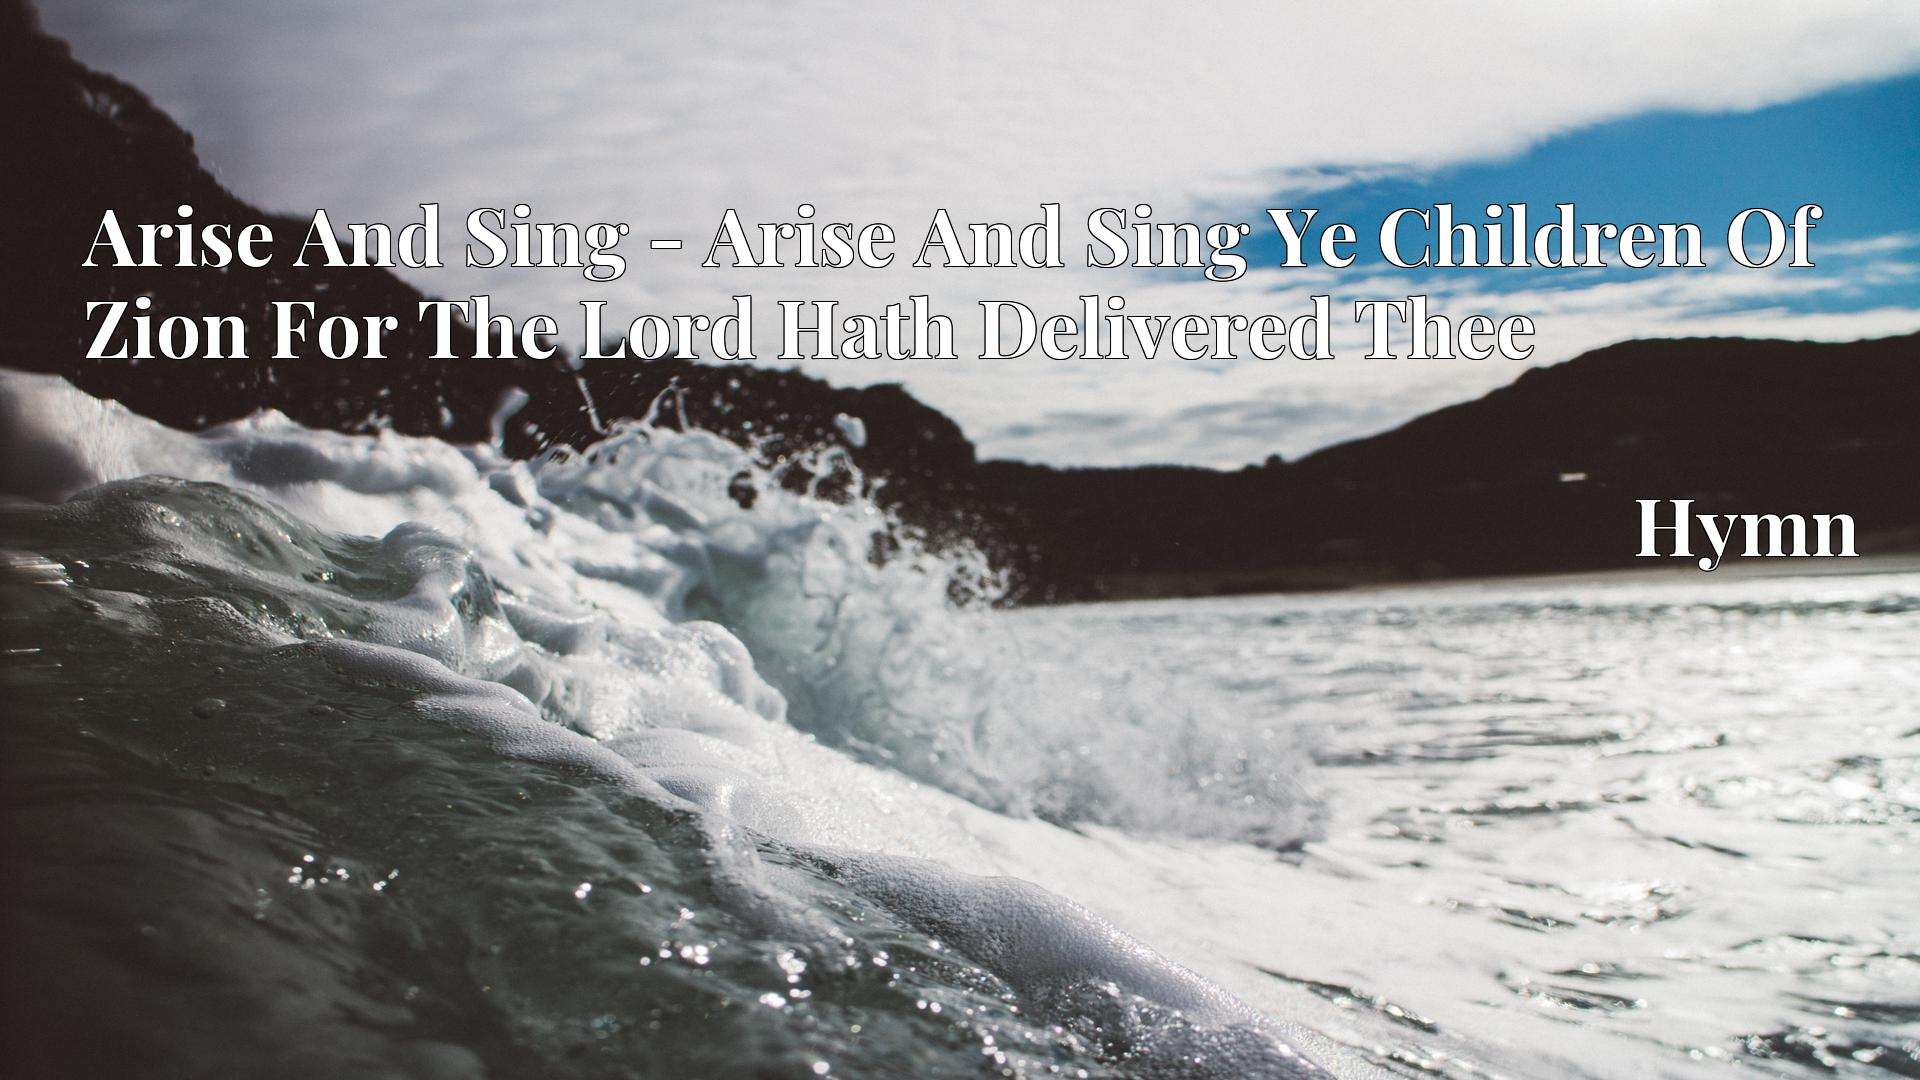 Arise And Sing - Arise And Sing Ye Children Of Zion For The Lord Hath Delivered Thee - Hymn